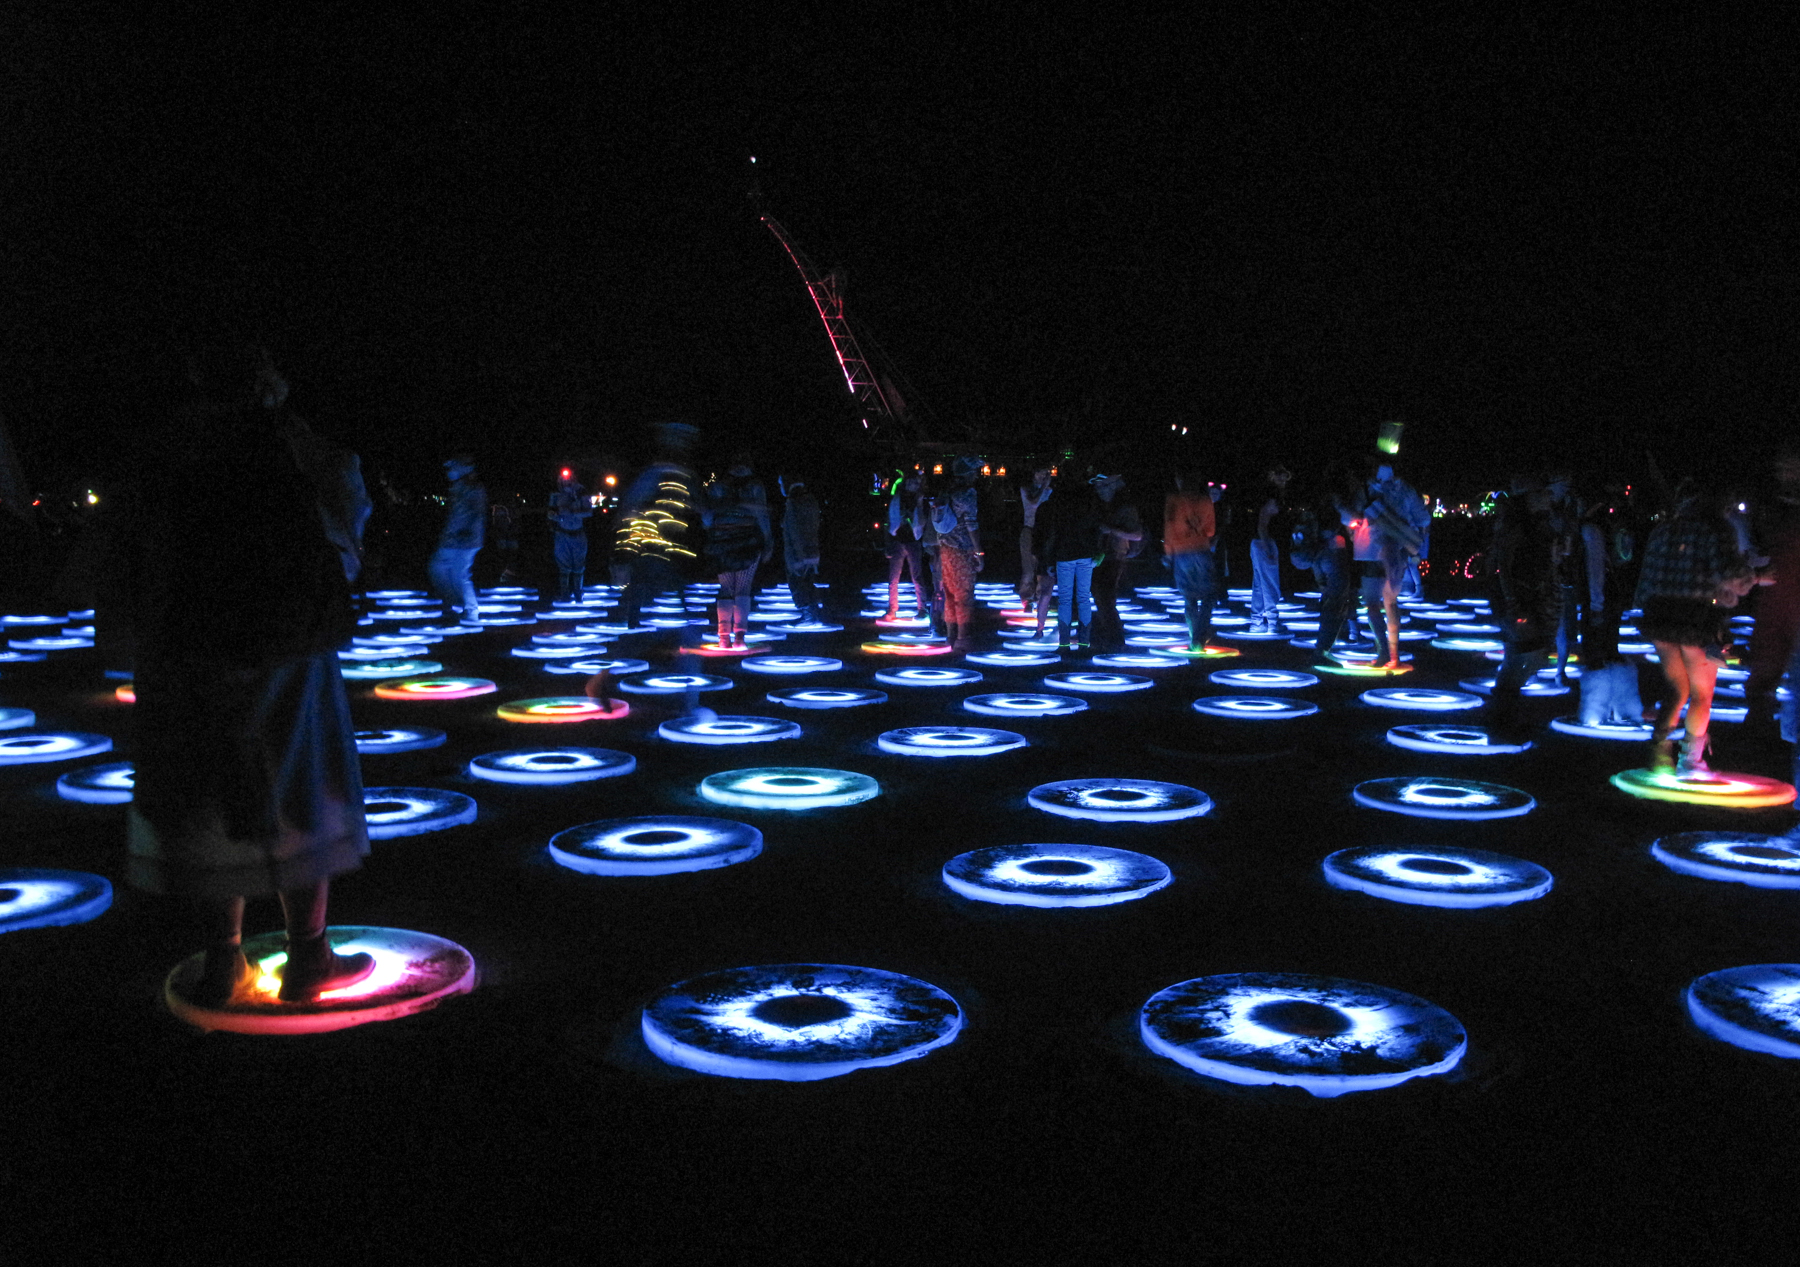 The Superpool: LED lilypads that lit up when you stepped on them. People were running around, laughing and screaming and I felt like were all about five years old again.